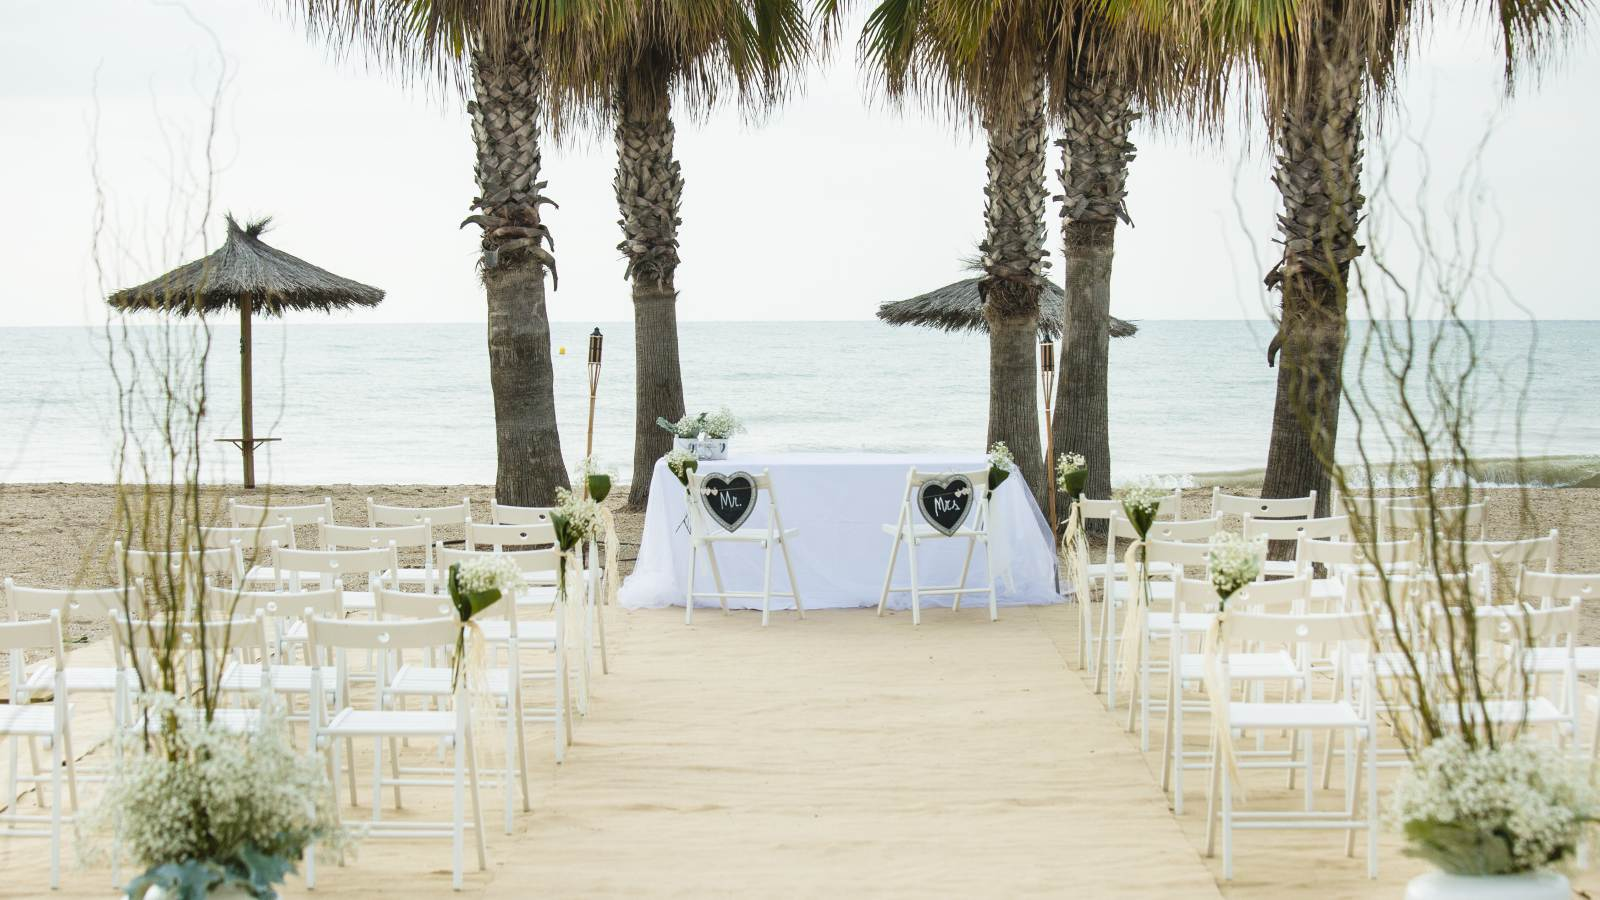 Plan a beach wedding at Le Méridien Ra El Vendrell